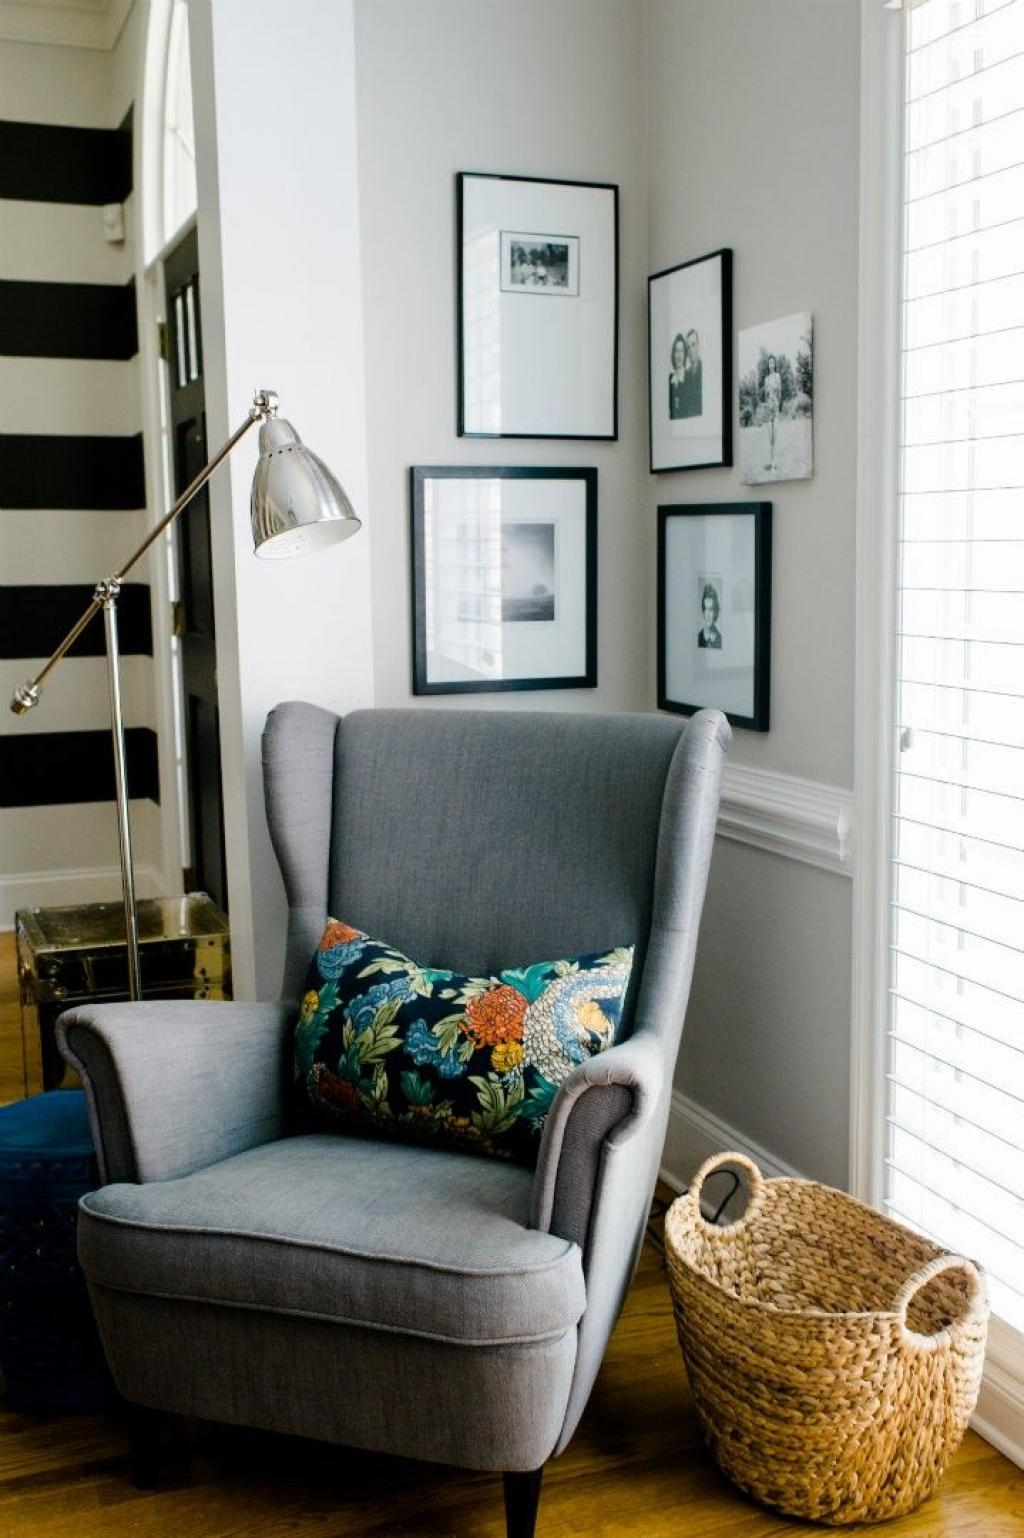 Minimalist Grey Corner Reading Wing Chair with Rattan Basket